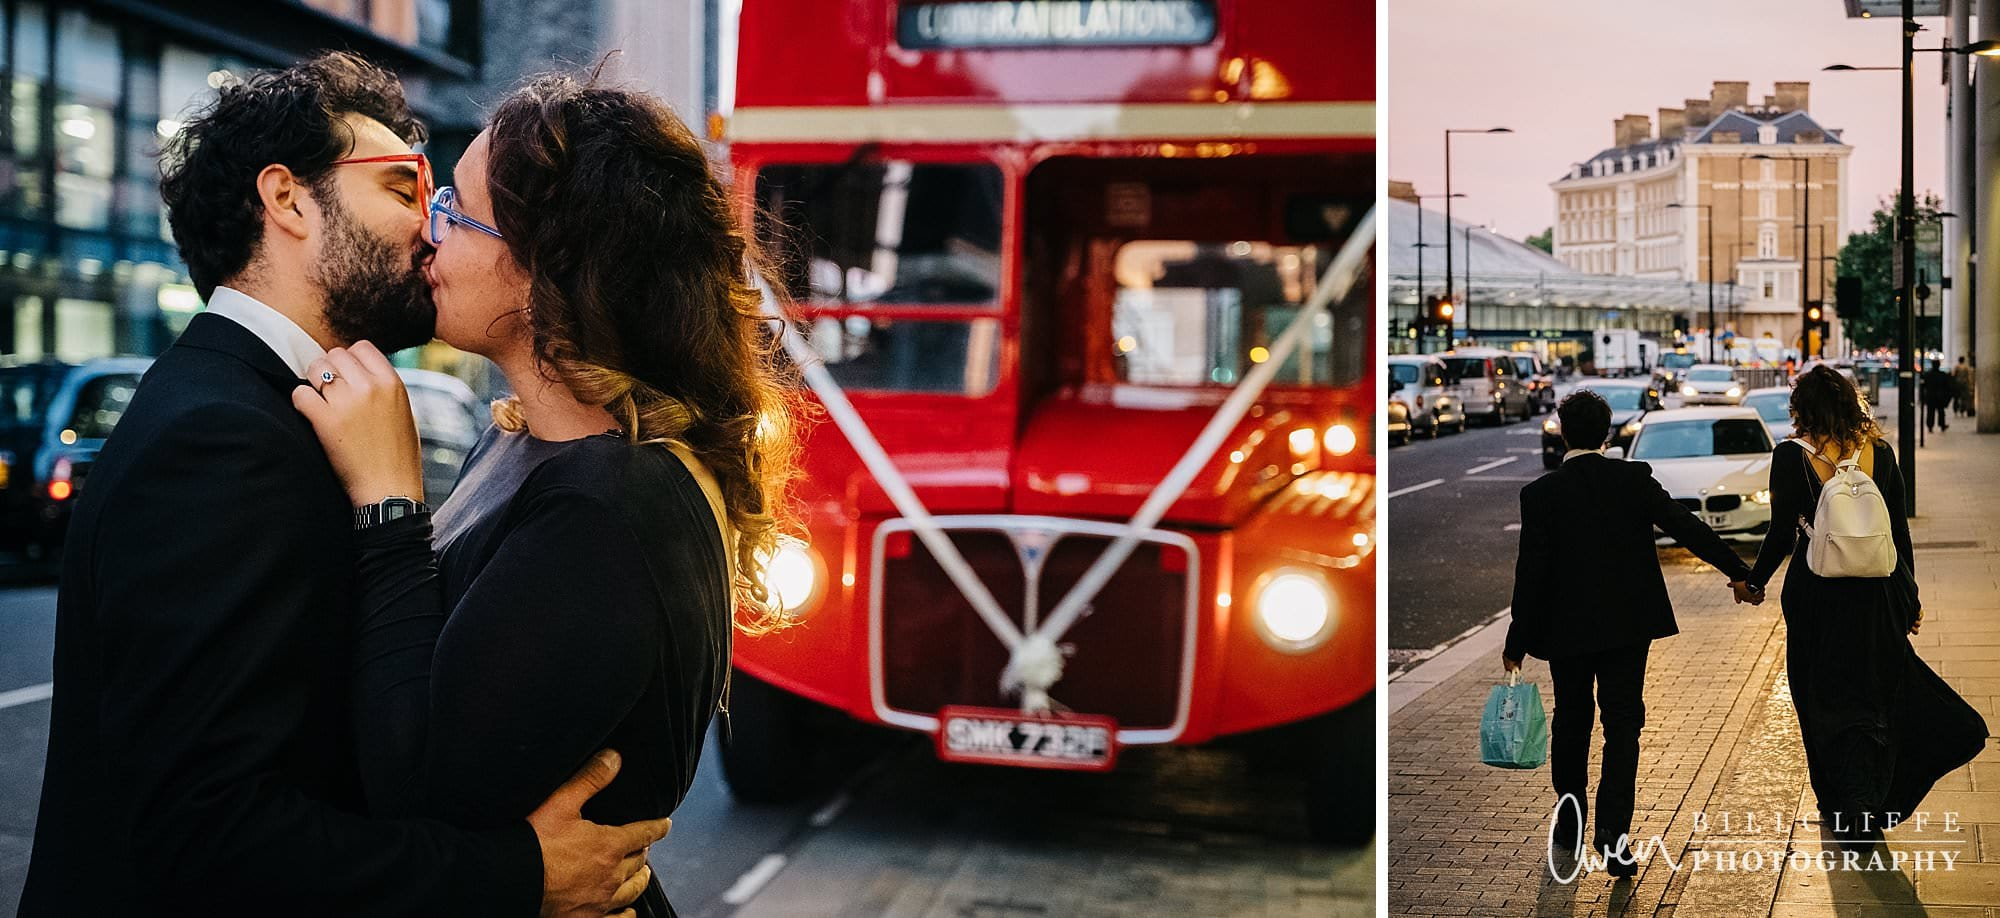 london engagement proposal photographer routemaster gr 031 - A Romantic Marriage Proposal on a London Routemaster Bus